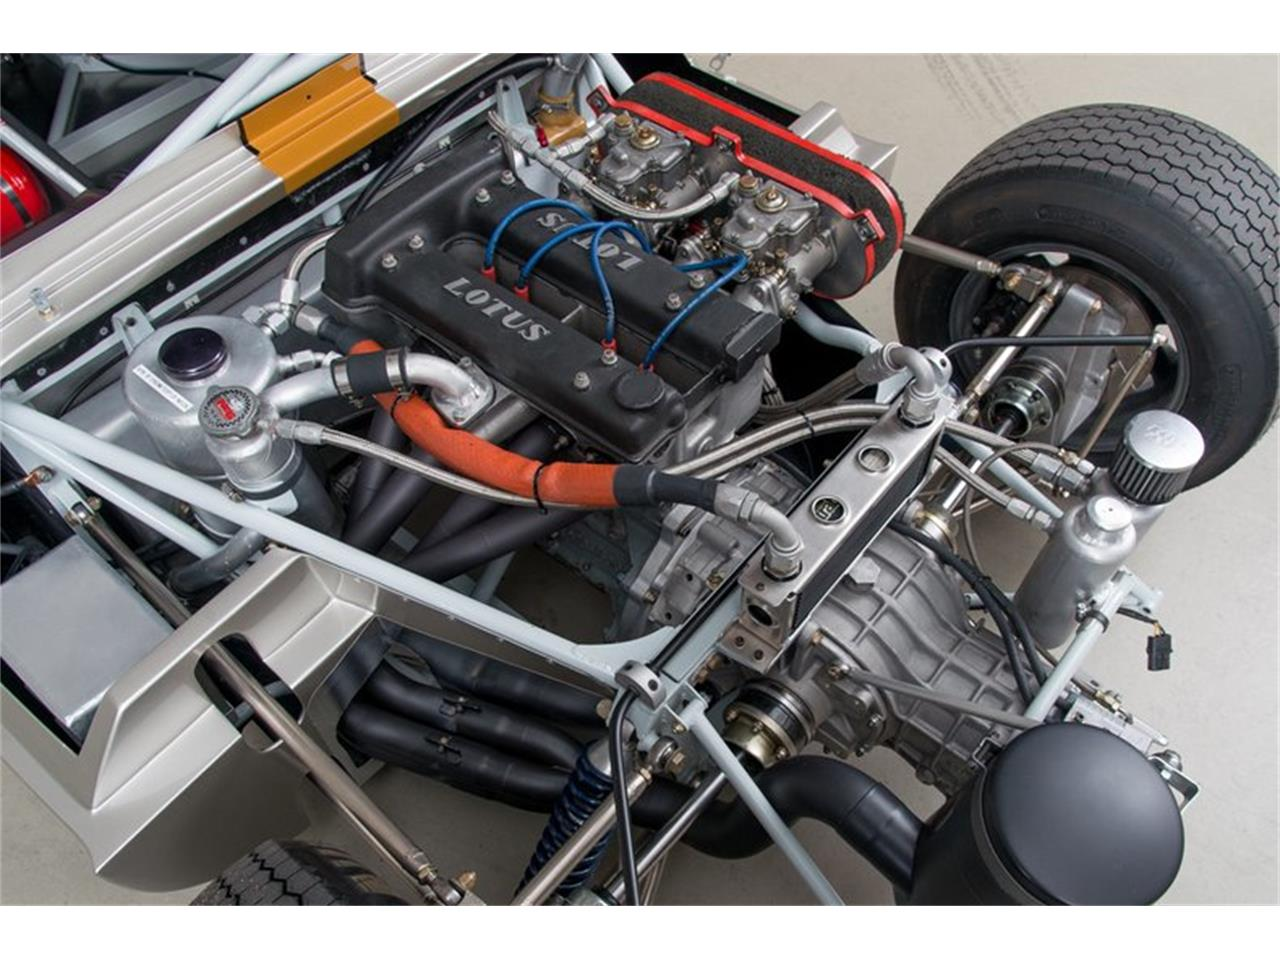 1967 Ginetta G12 for sale in Scotts Valley, CA – photo 15